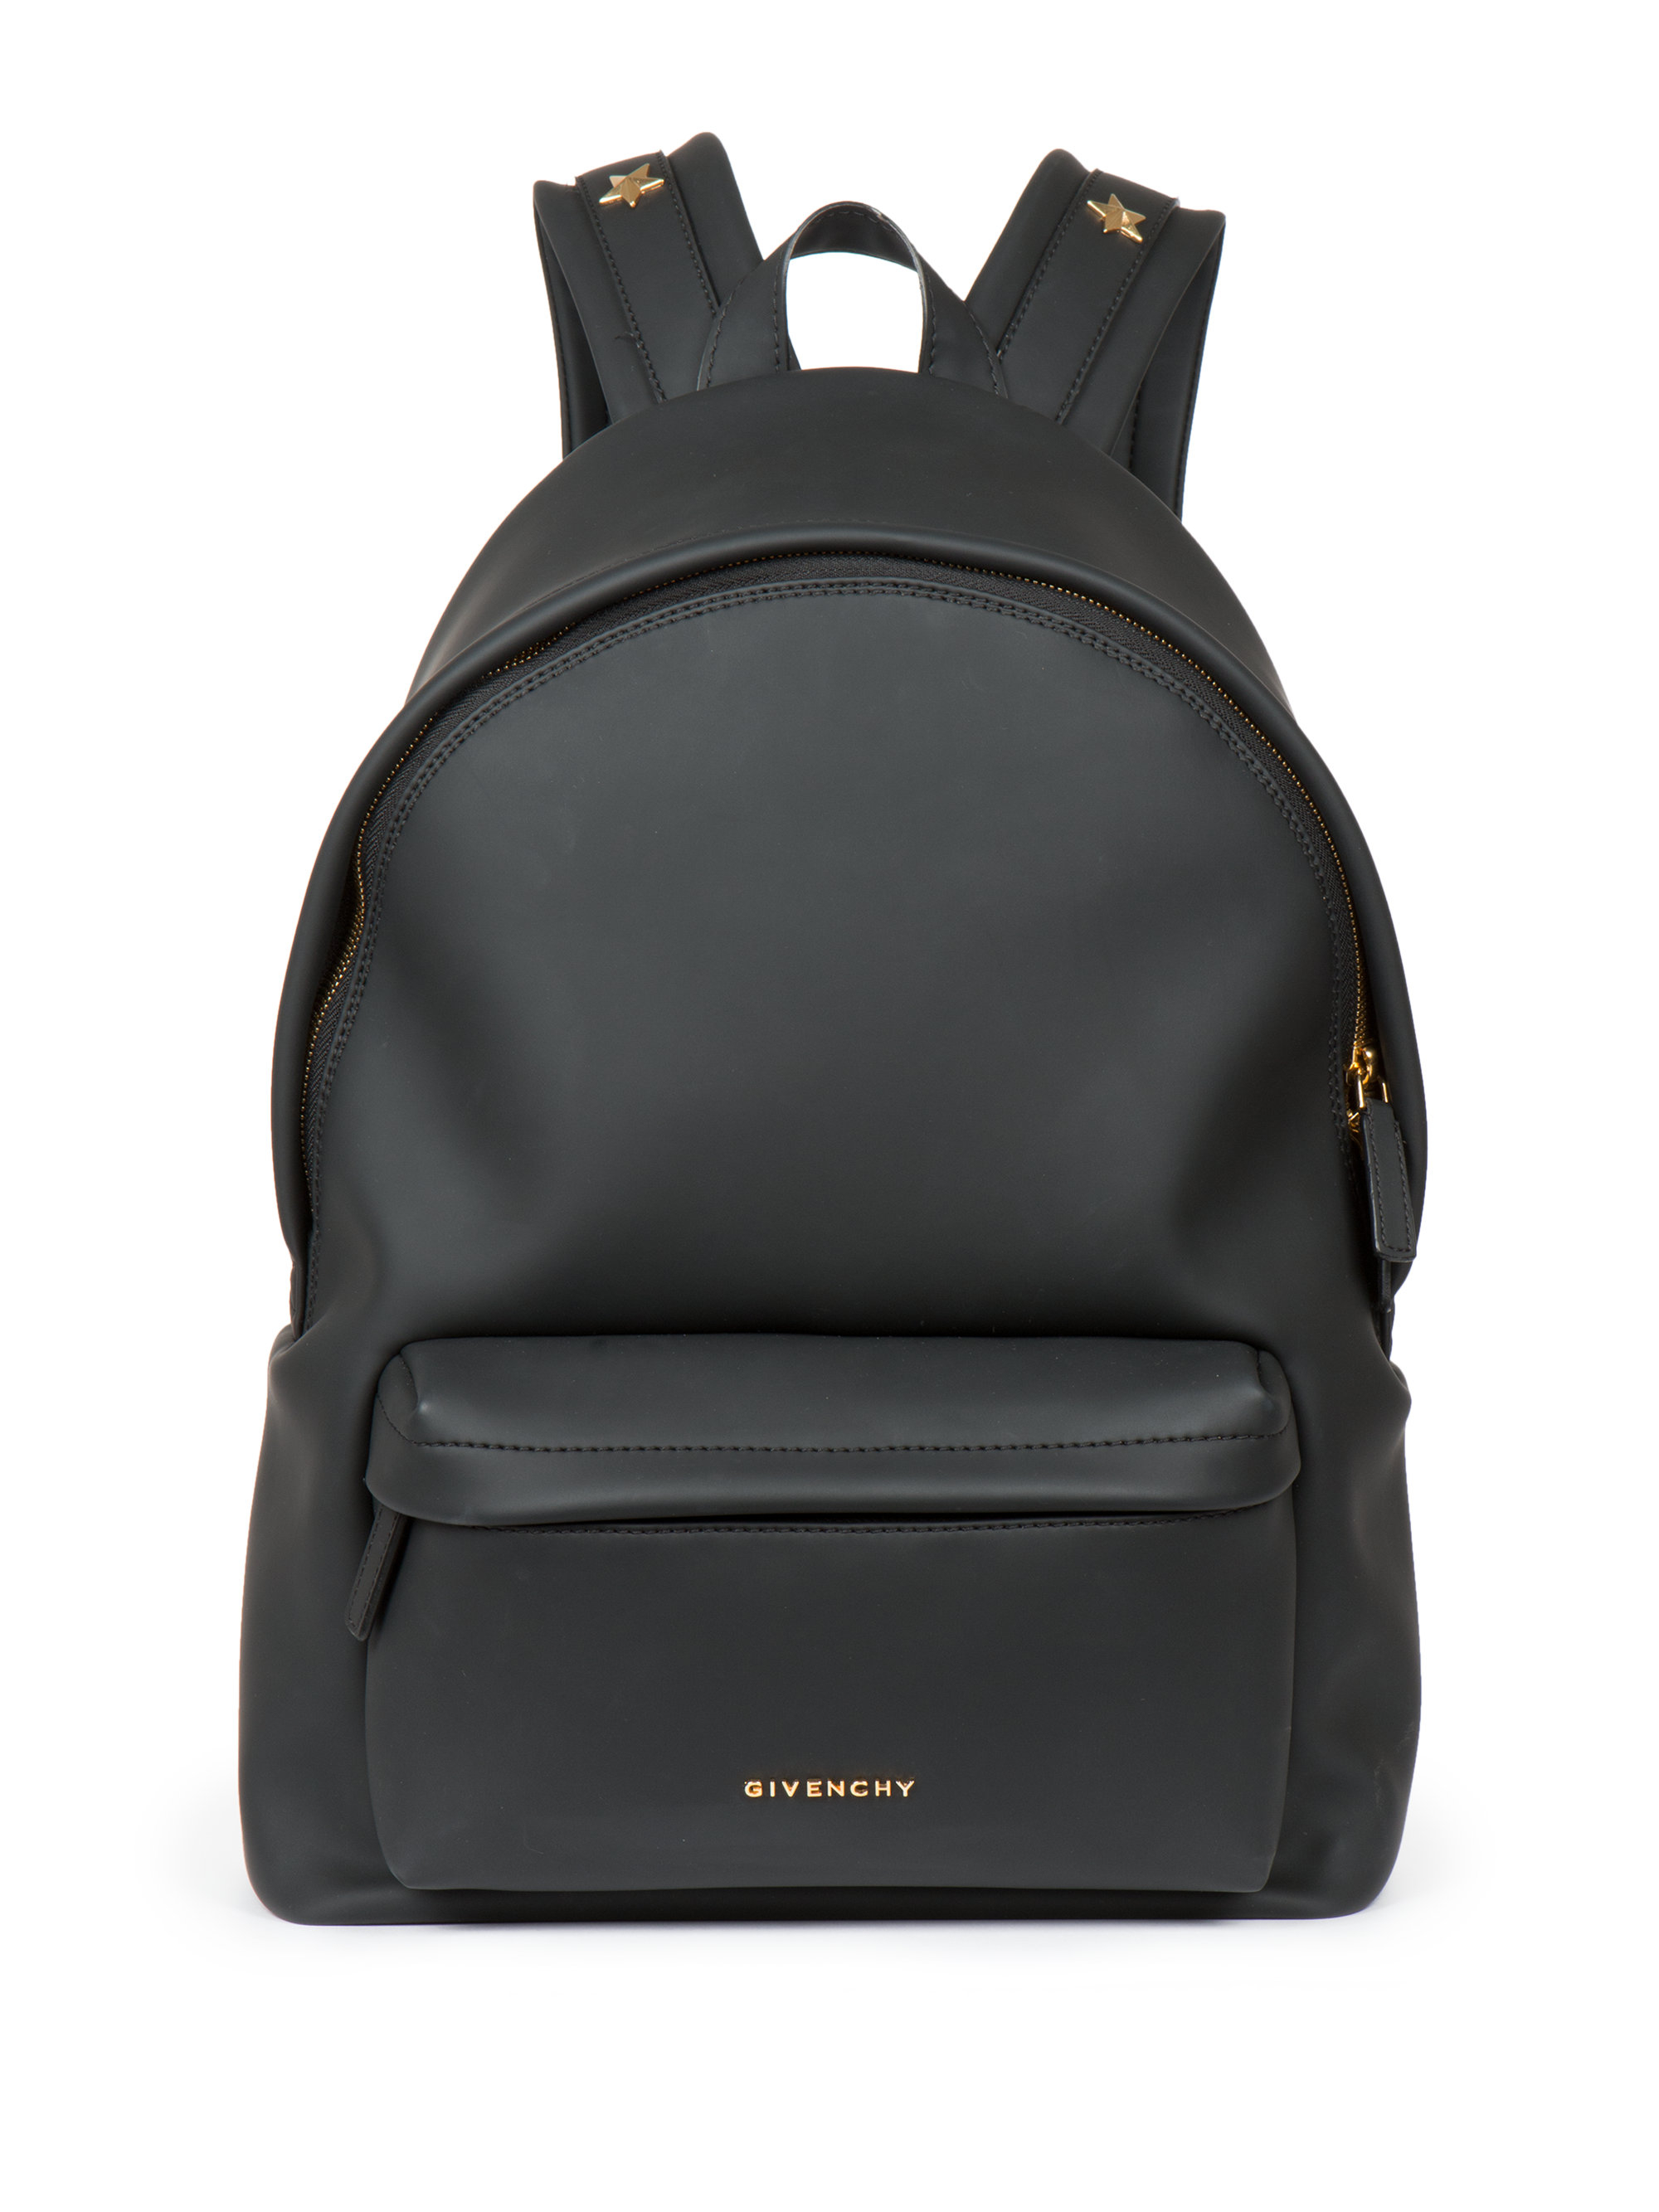 Givenchy Small Faux-leather Backpack in Black | Lyst